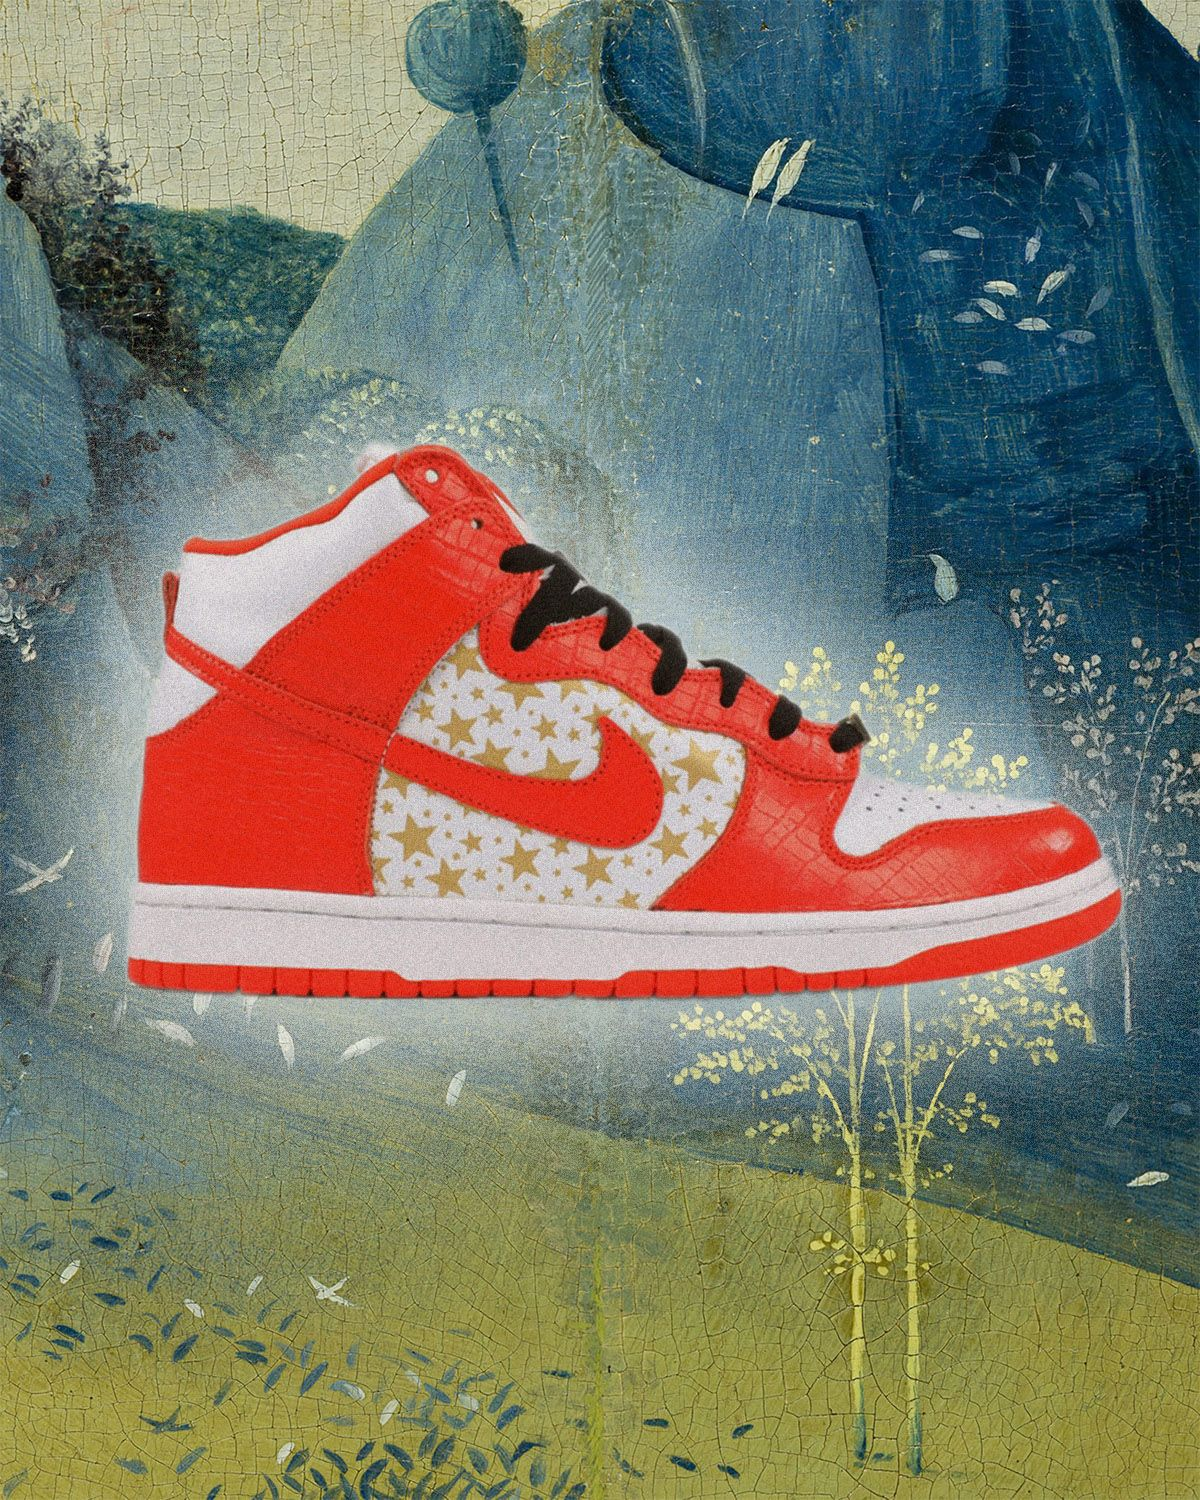 The 50 Most Influential Nike Dunks in History 173